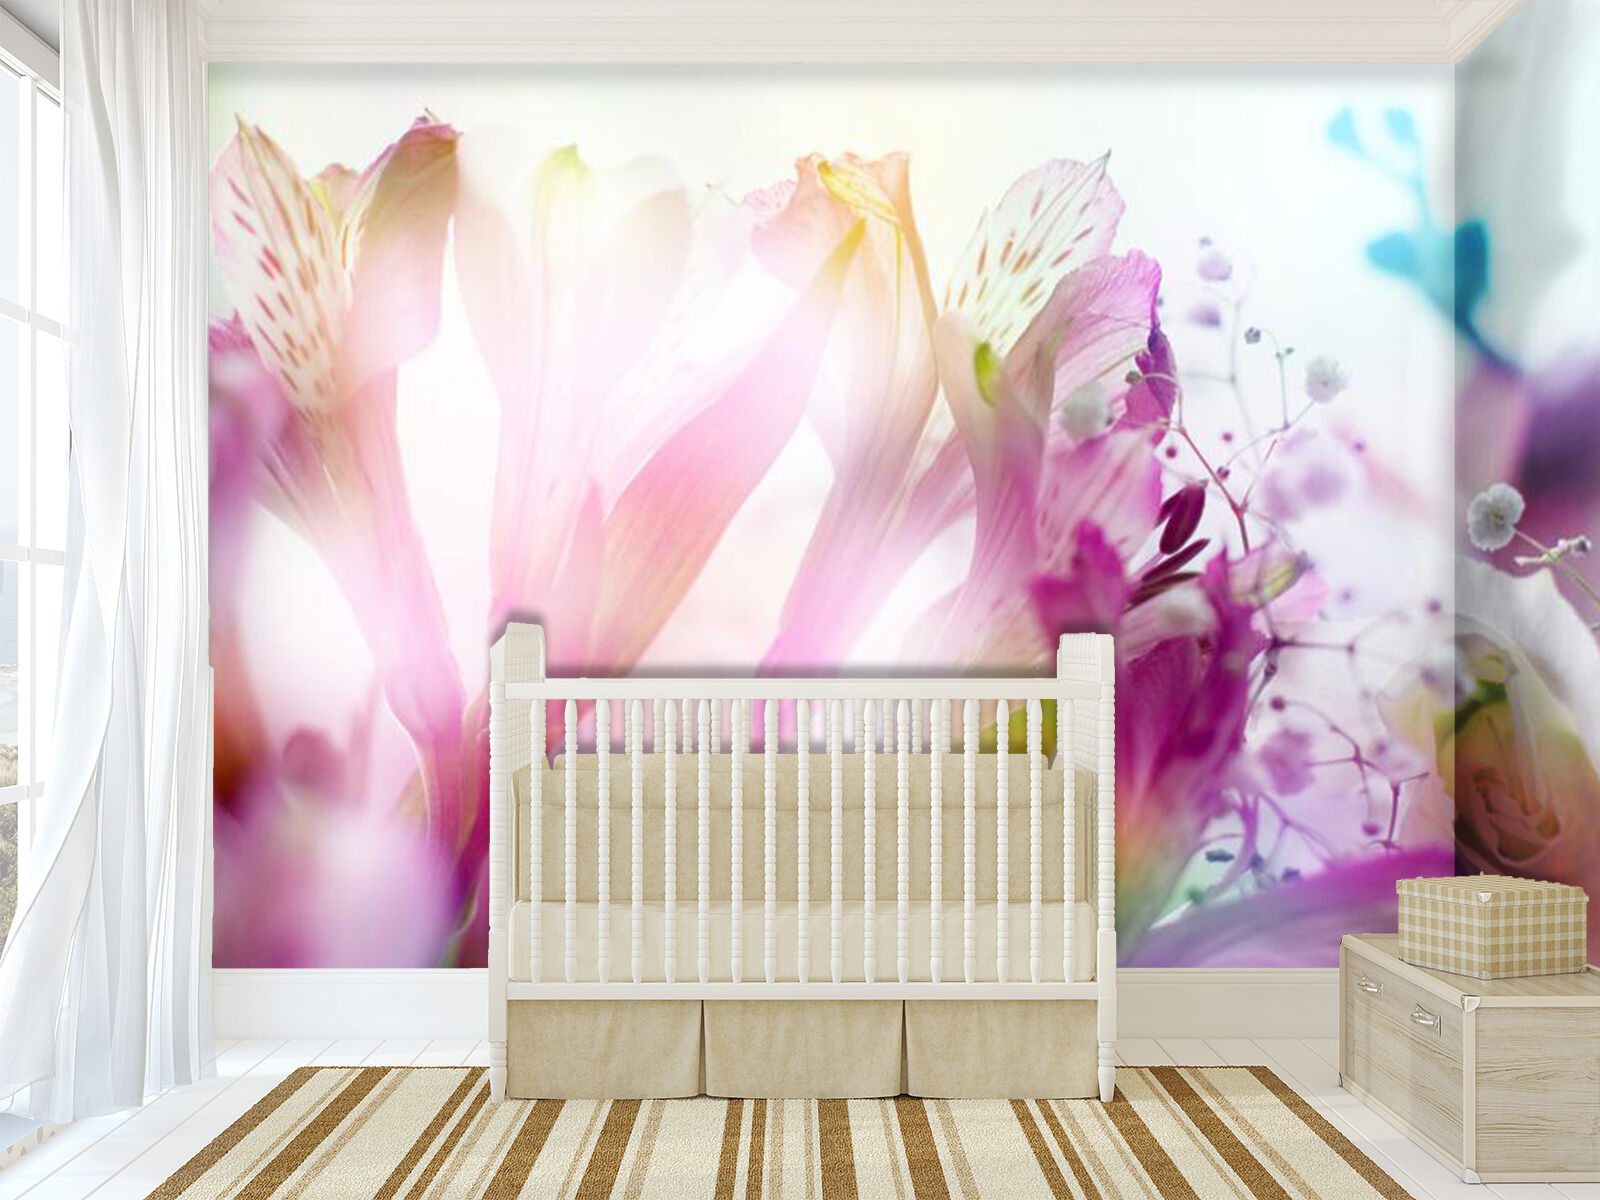 3D Sunshine, flowers 3 Wall Paper Wall Print Decal Wall Deco Indoor Wall Murals